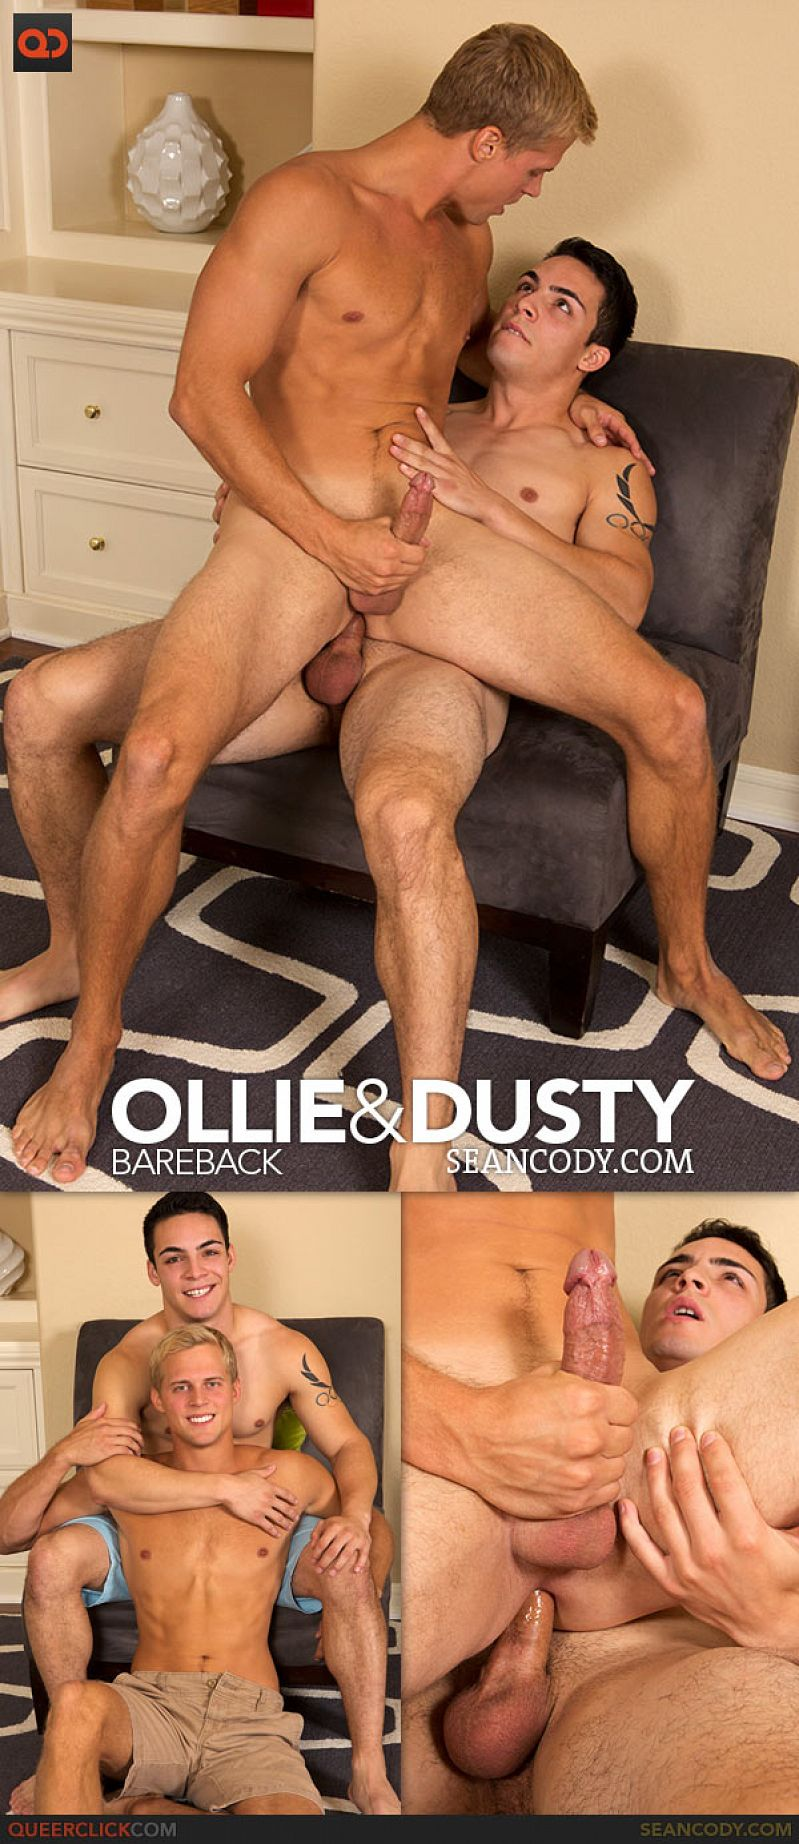 SeanCody – Ollie and Dusty Bareback